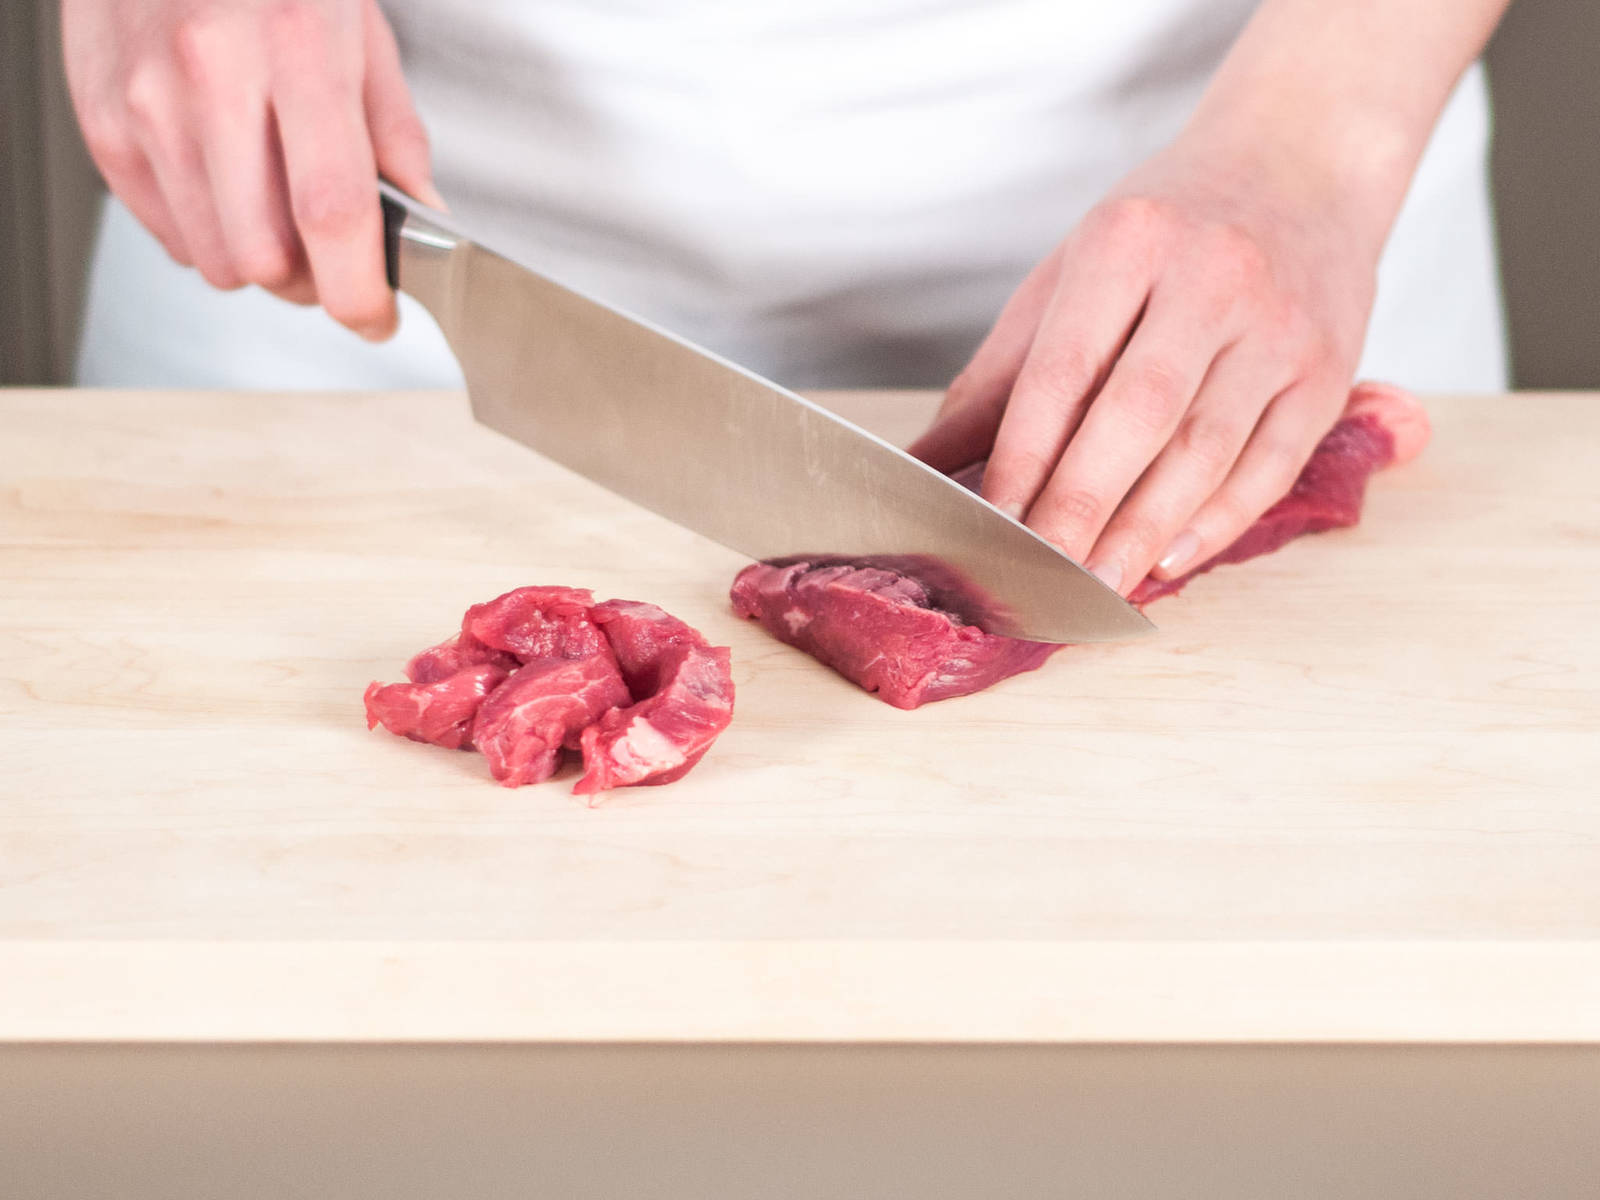 Cut beef into thin strips, approx. 2 cm thick.